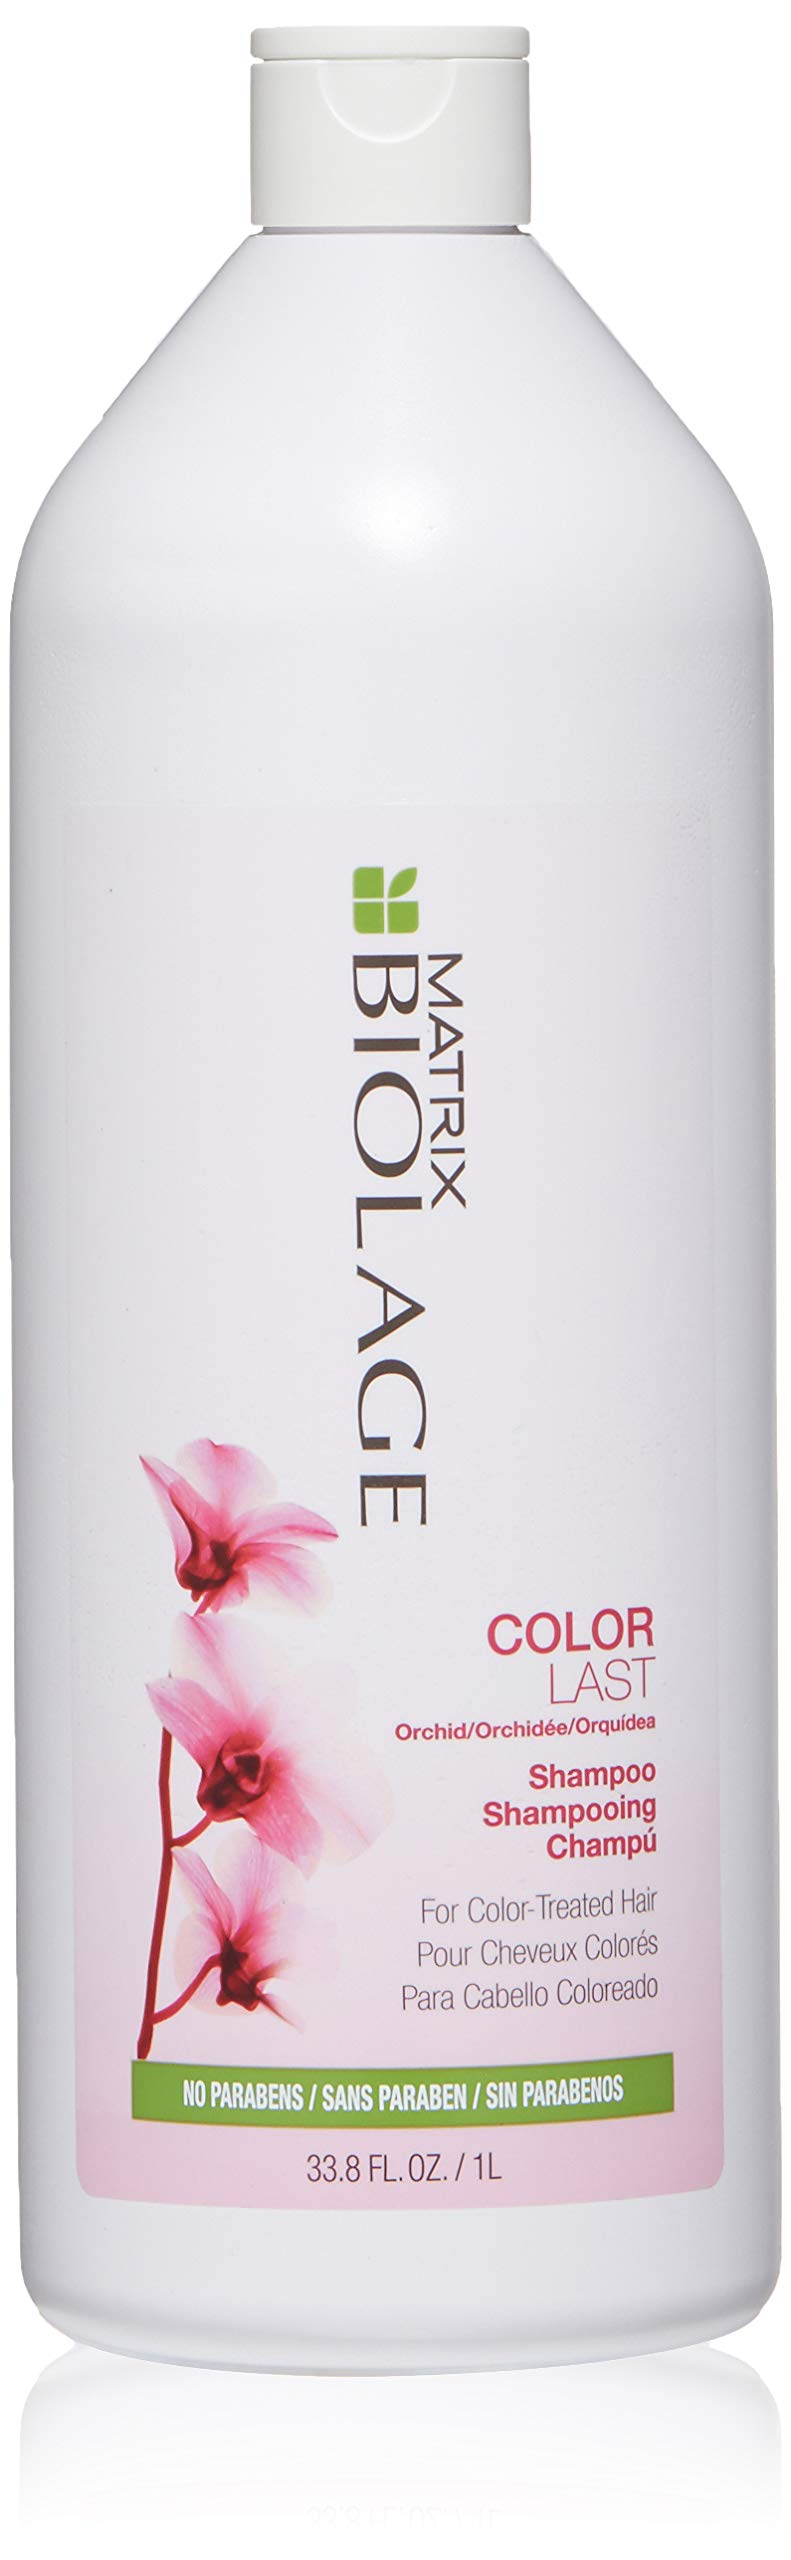 BIOLAGE Colorlast Shampoo For Color-Treated Hair, 33.8 Fl. Oz.